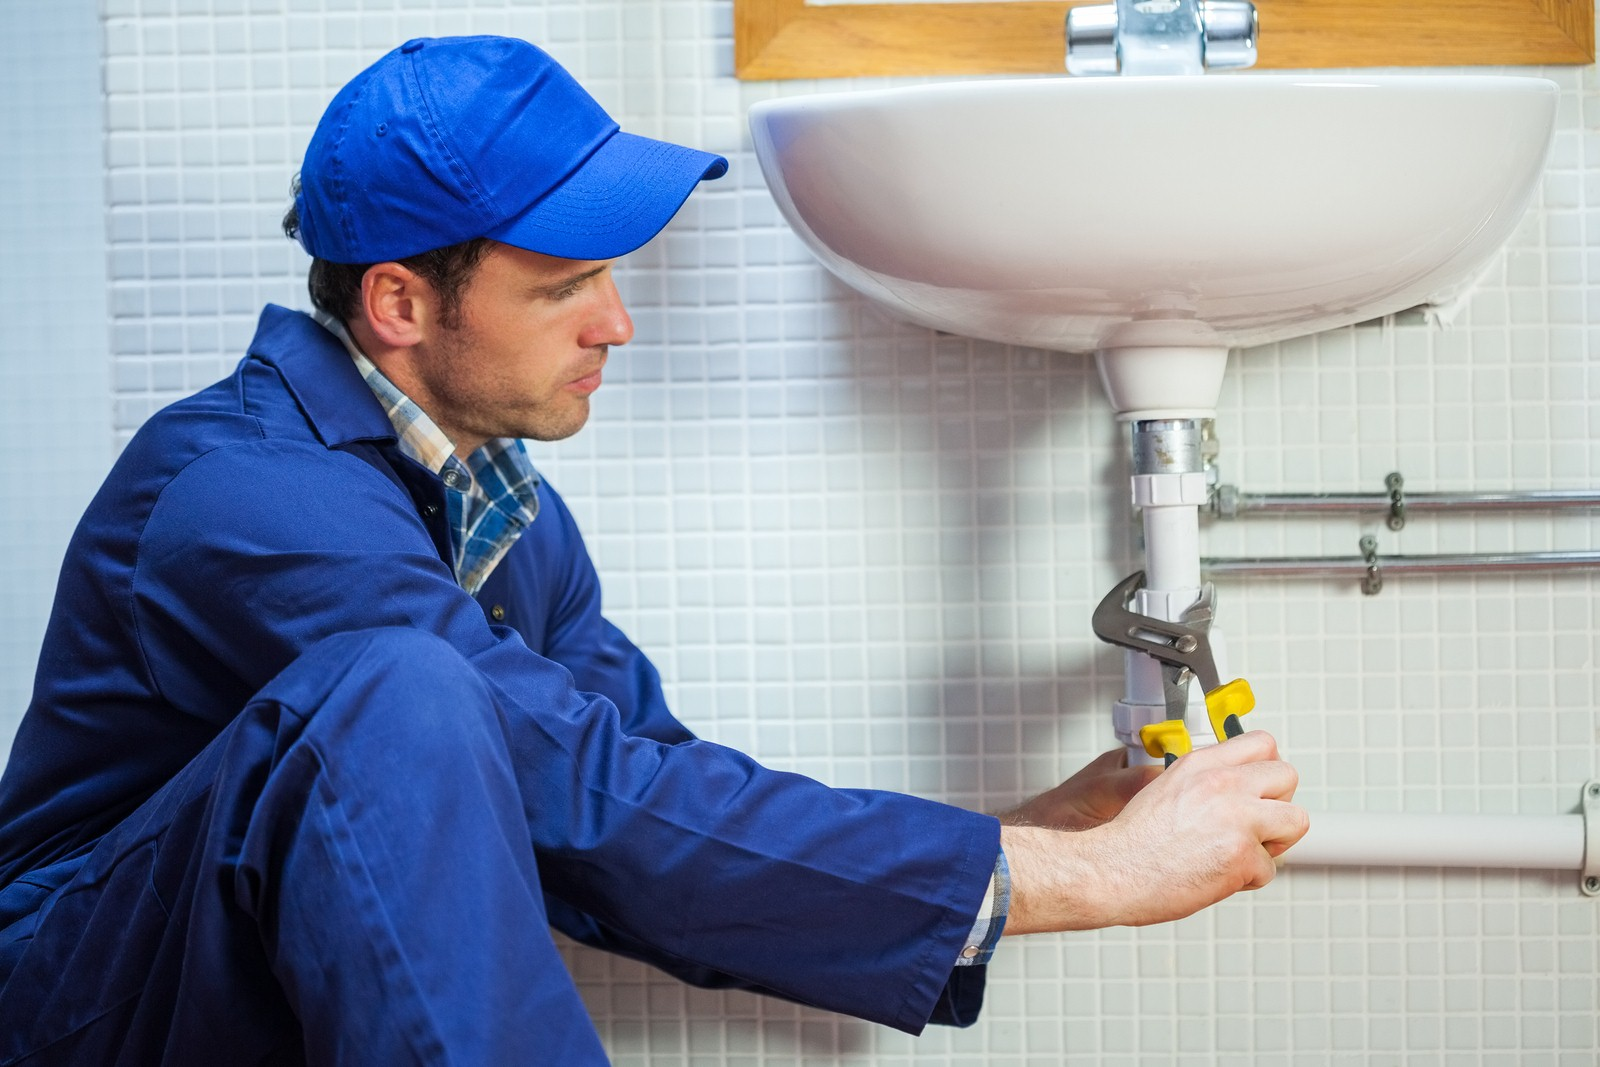 Plumber-Fixing-the-Sink.jpg